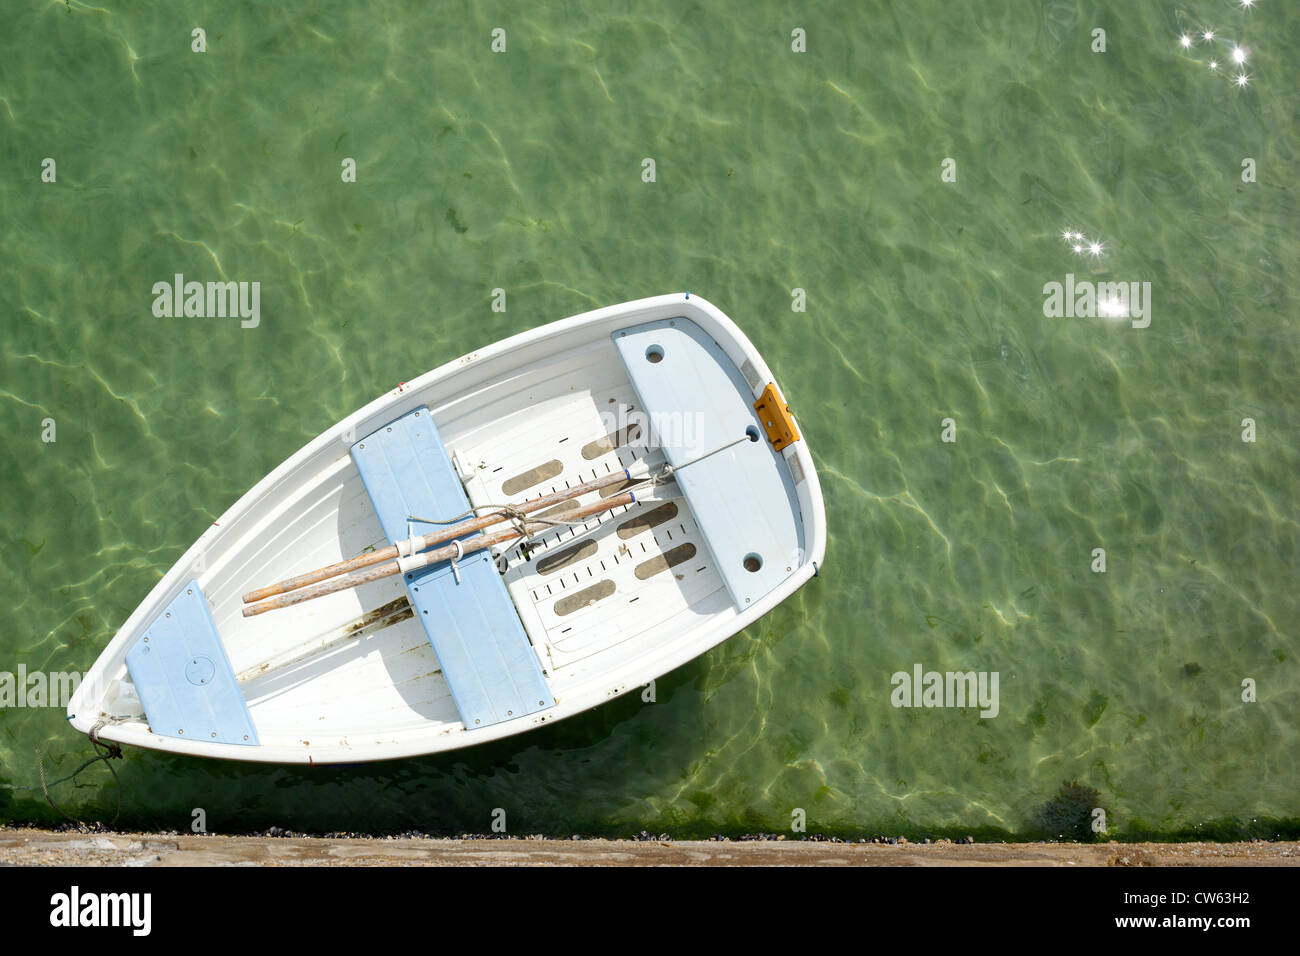 Small rowing boat moored to St. Ives pier in Cornwall UK. - Stock Image